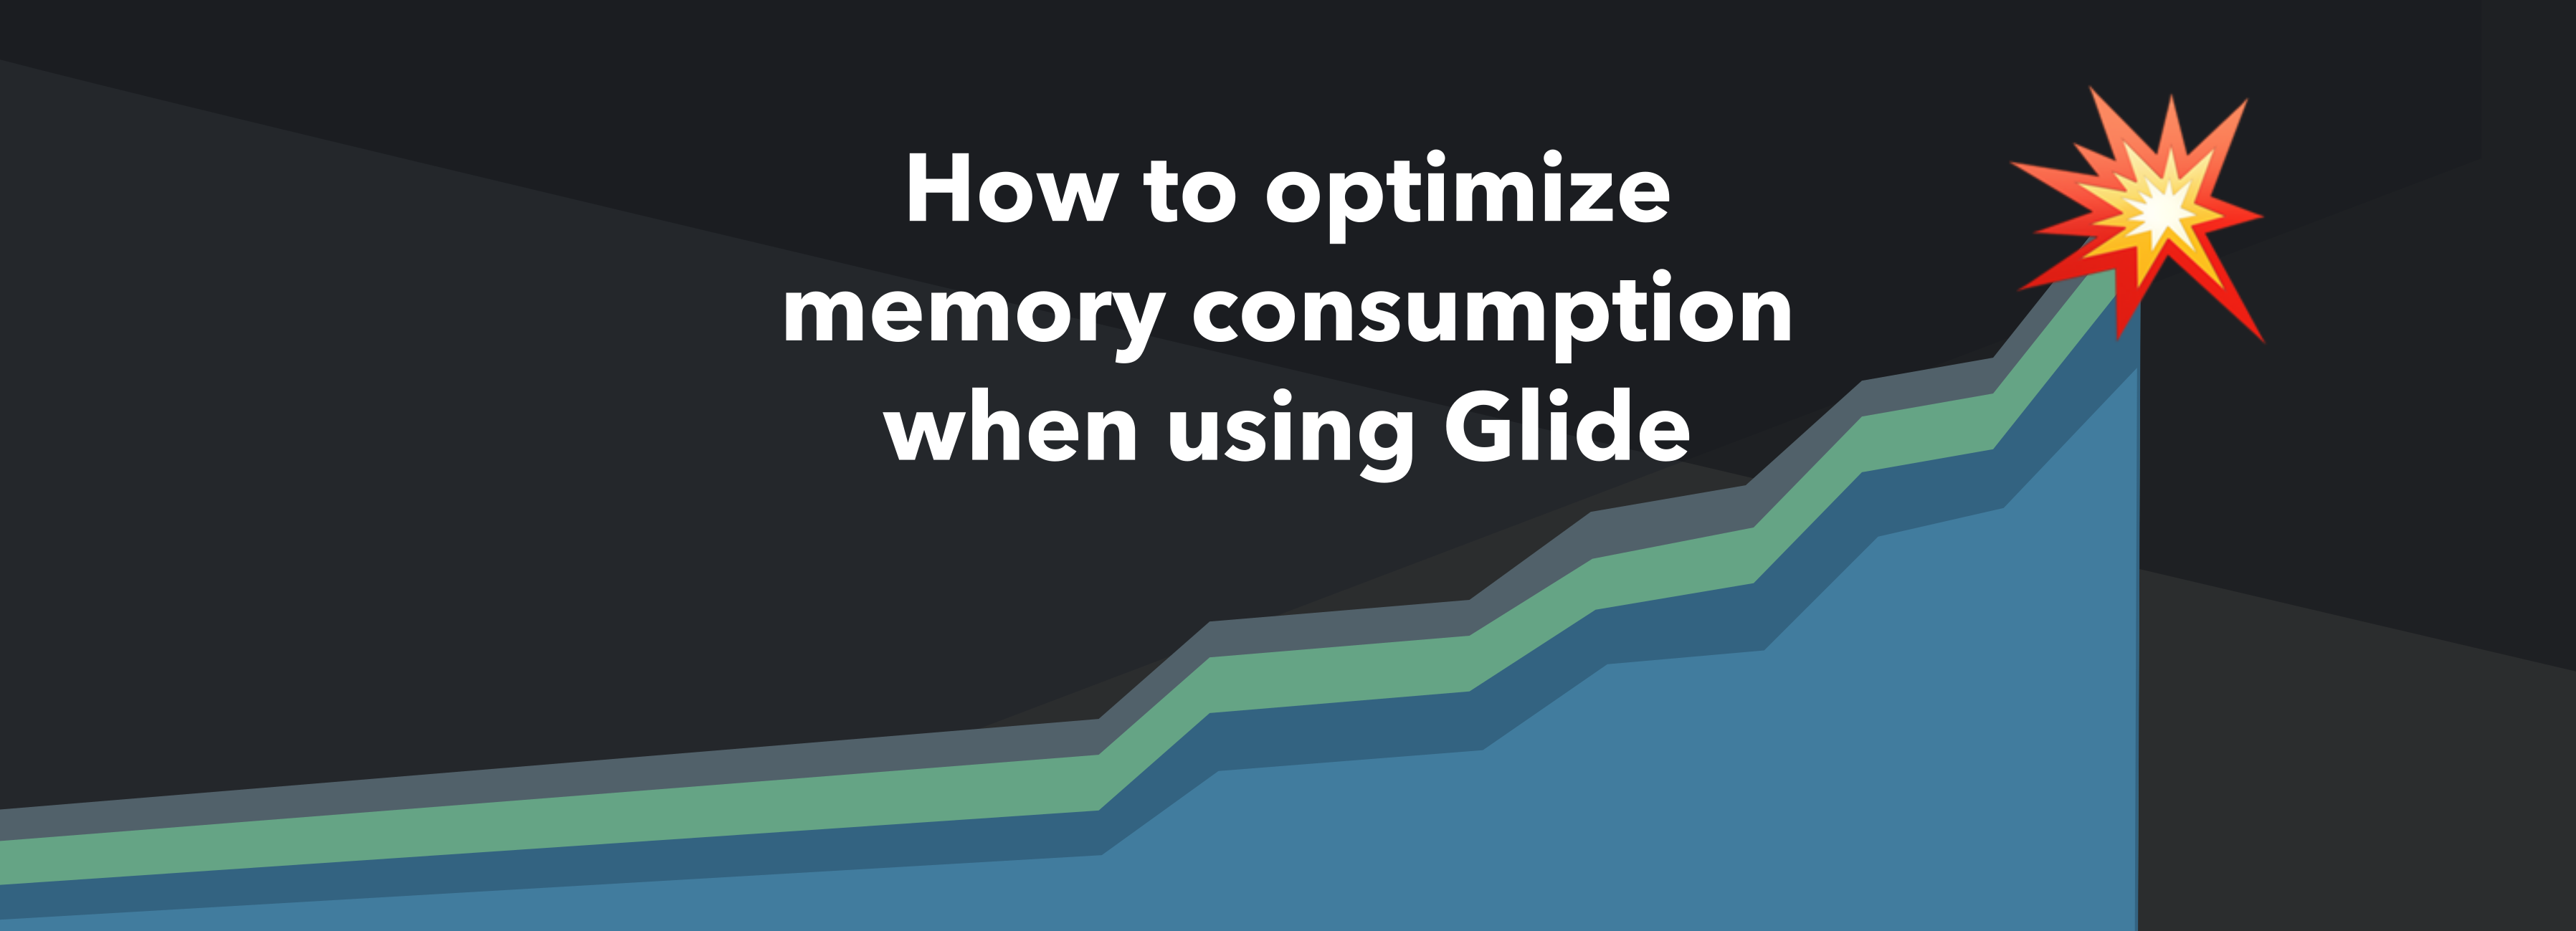 How to optimize memory consumption when using Glide